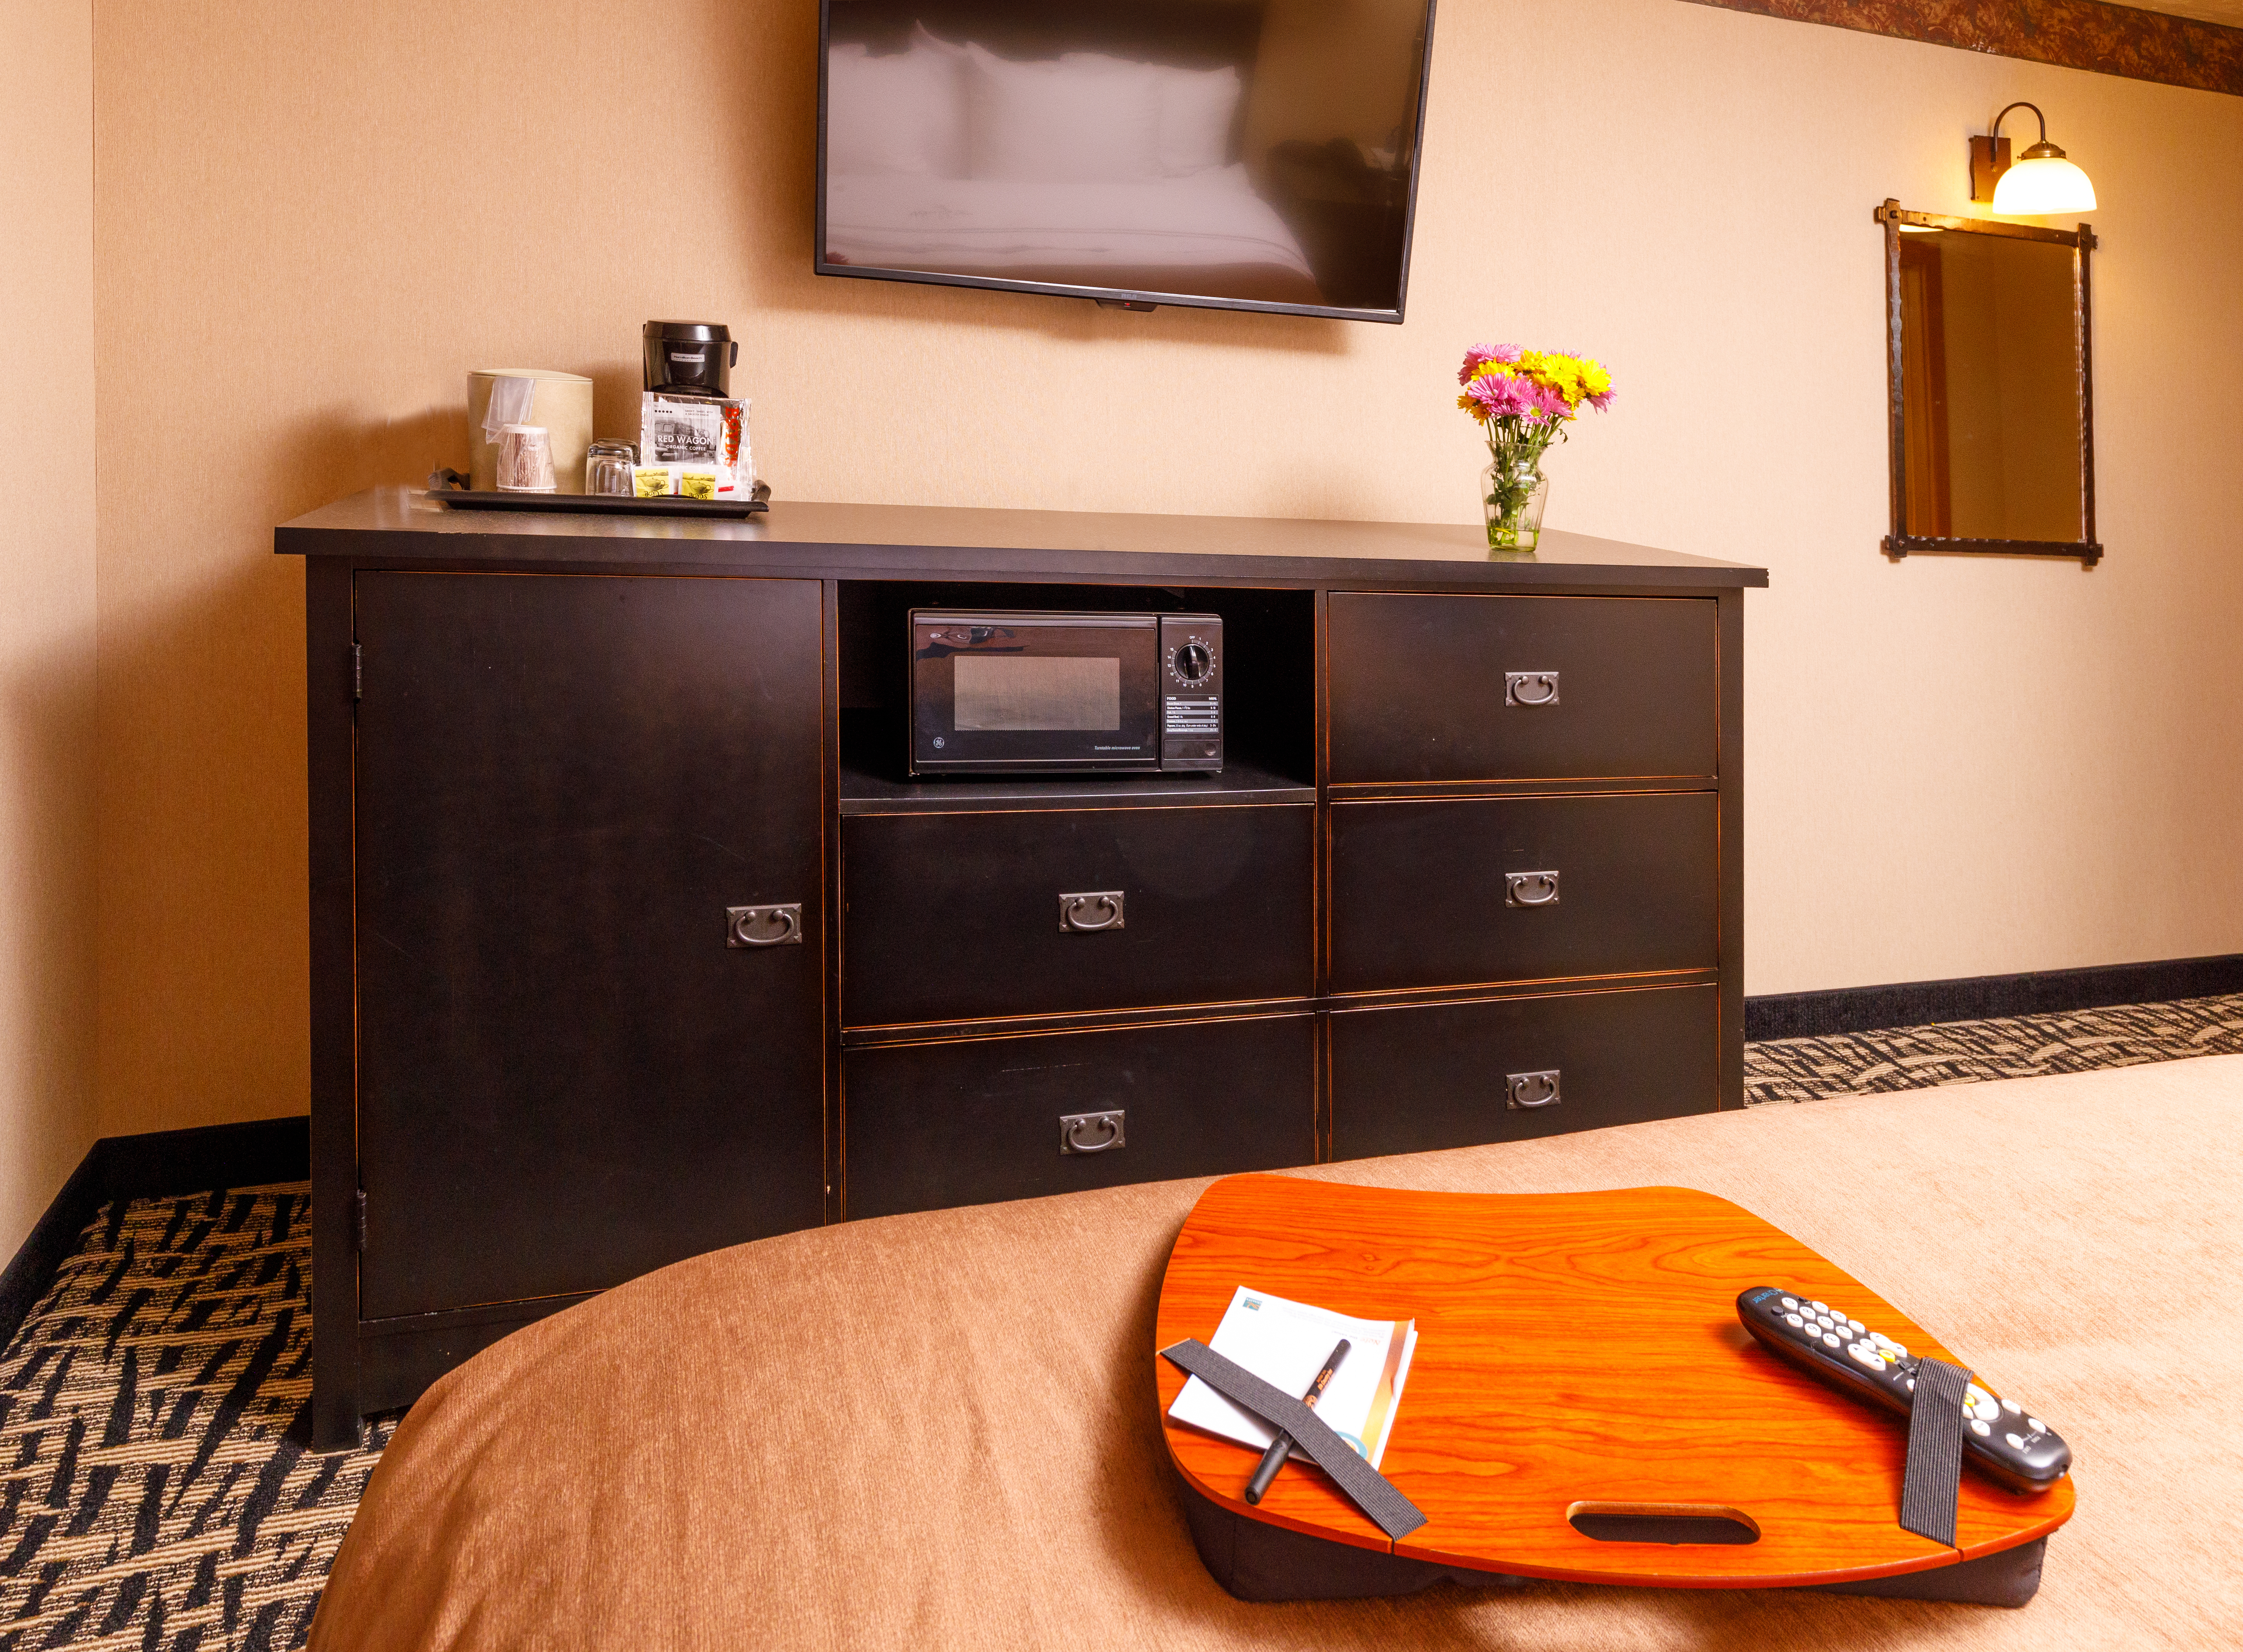 Jackson Hole Hotel Prices pare Room Rates Find